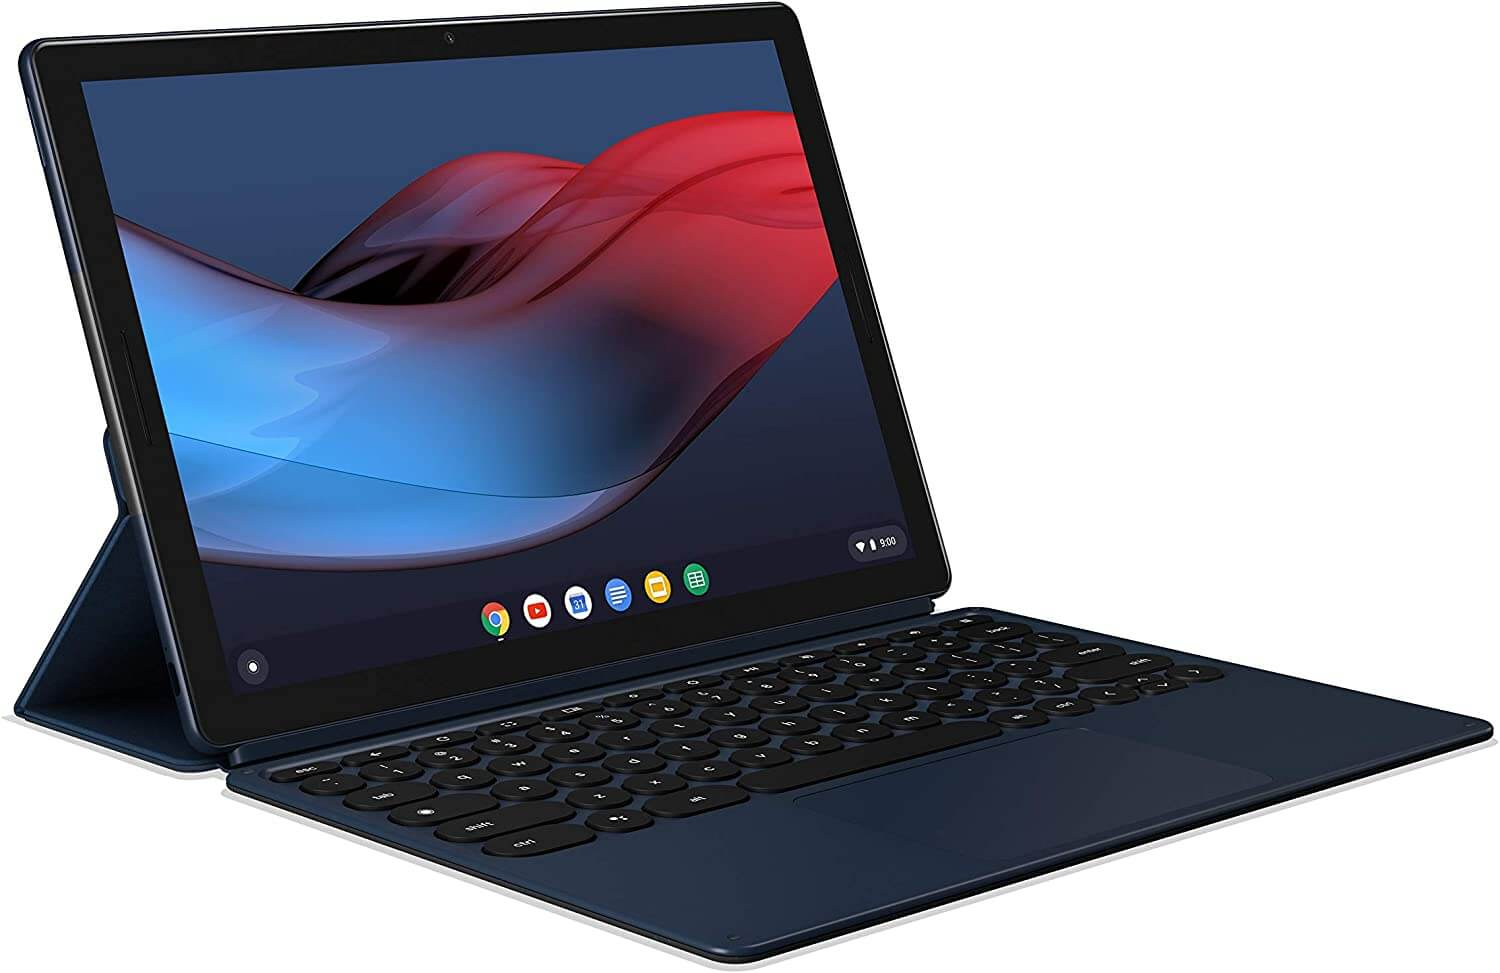 Google Pixel Slate 12.3-Inch 2 in 1 Tablet - Best Tablet For Note Taking With Stylus